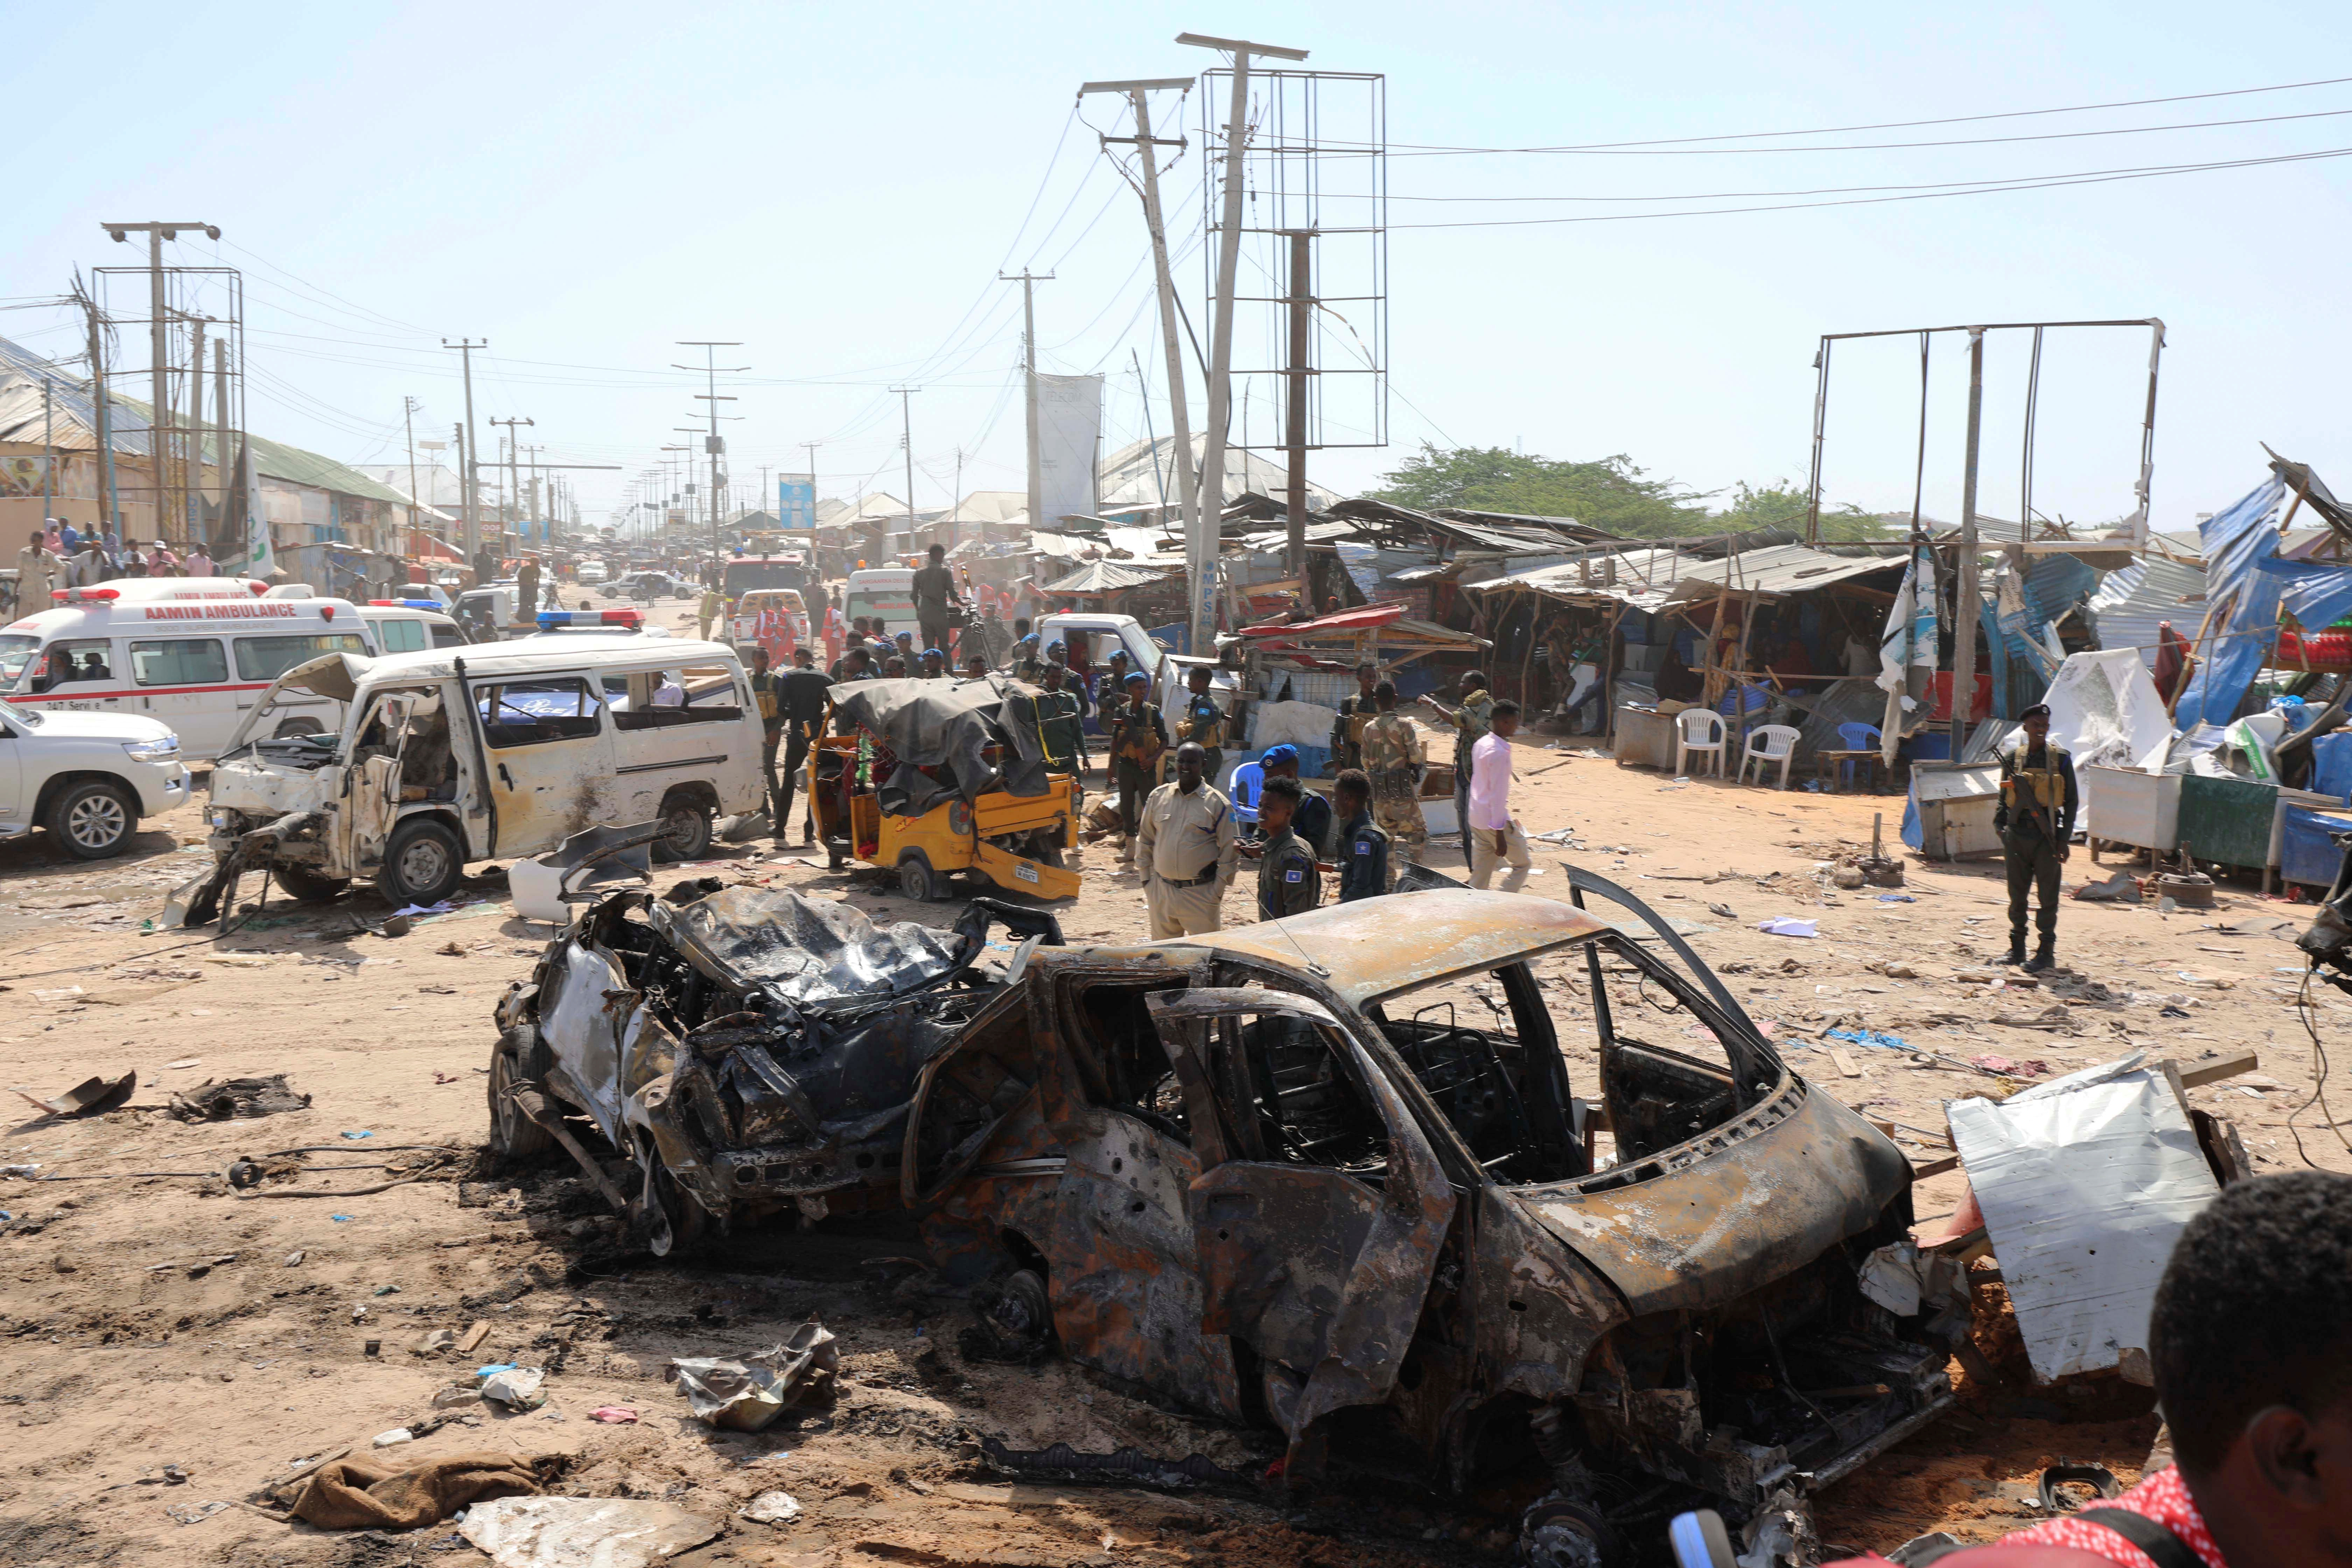 Somali Agency Accuses Unnamed Country of Being Behind Deadly Truck Bombing